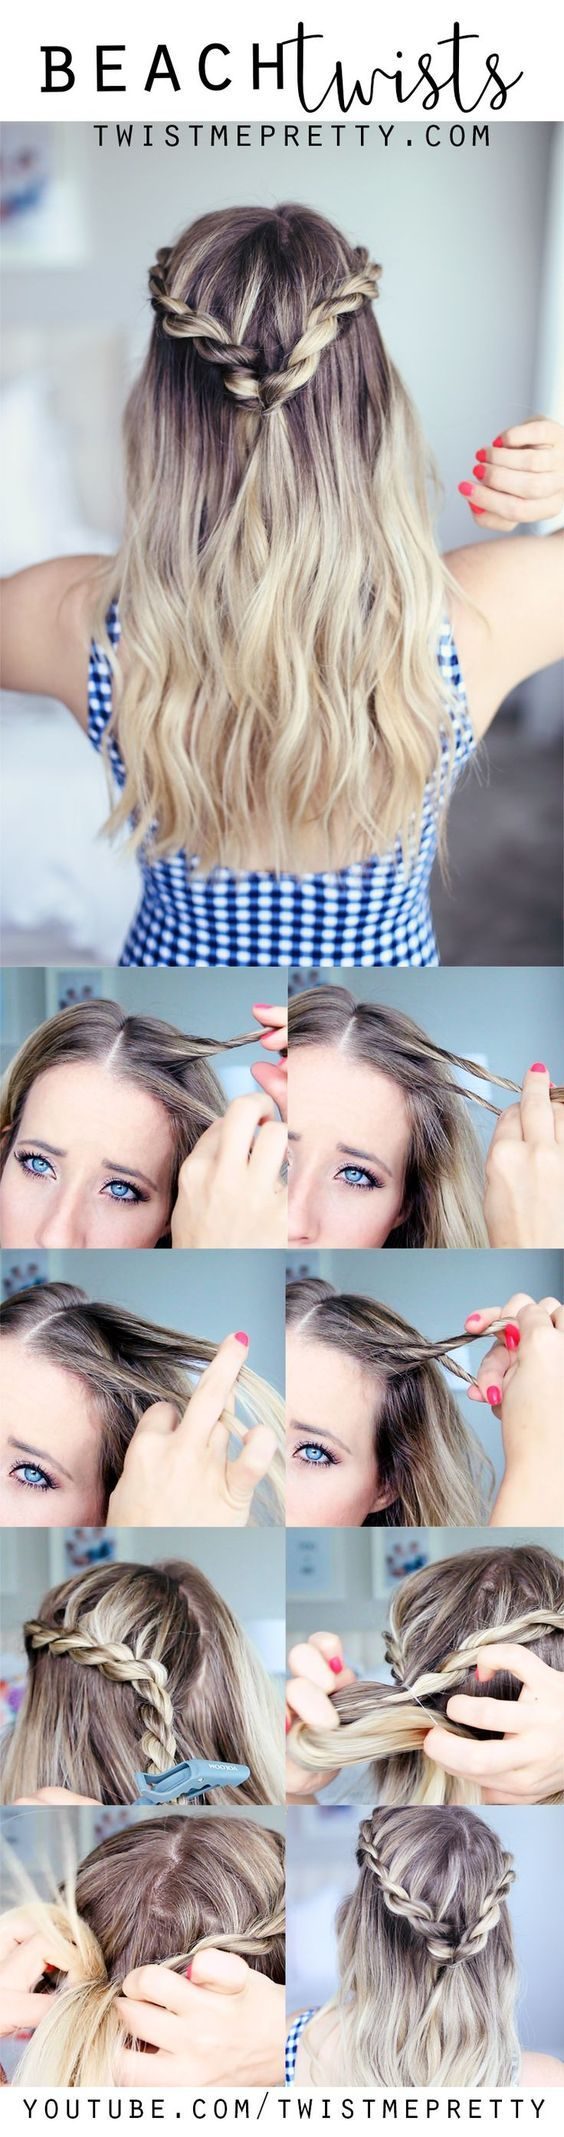 best messy head images on pinterest